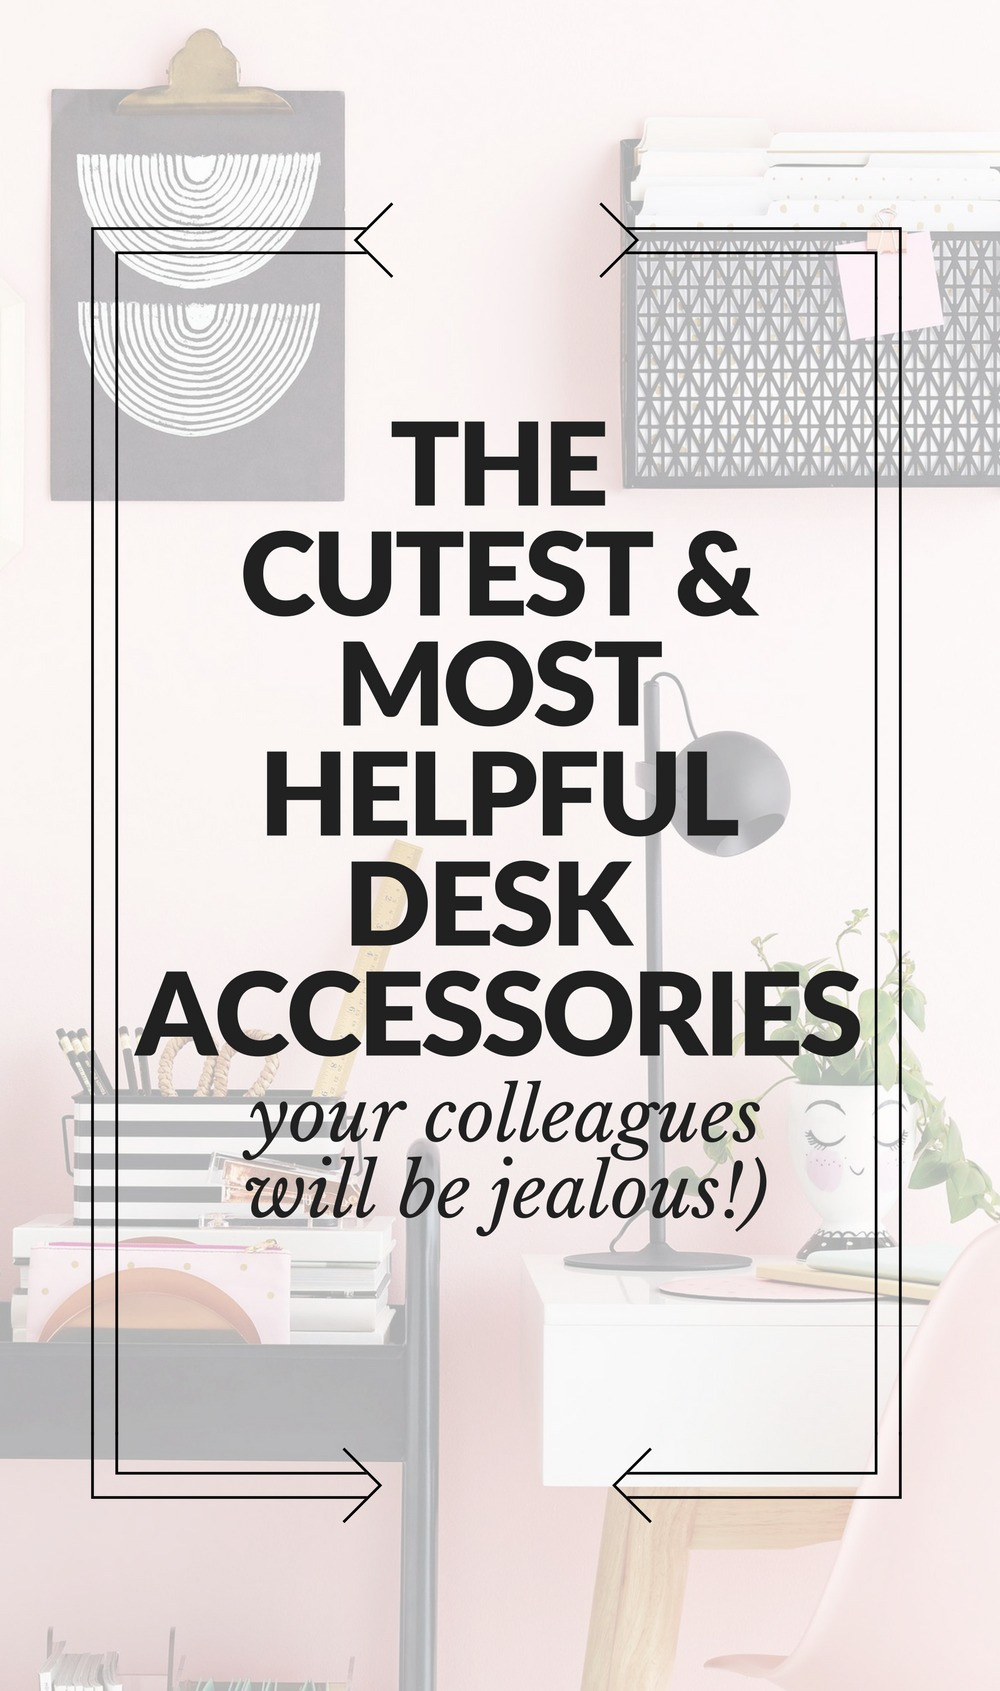 The cutest & most helpful desk accessories that will absolutely make your colleagues jealous // the modern savvy